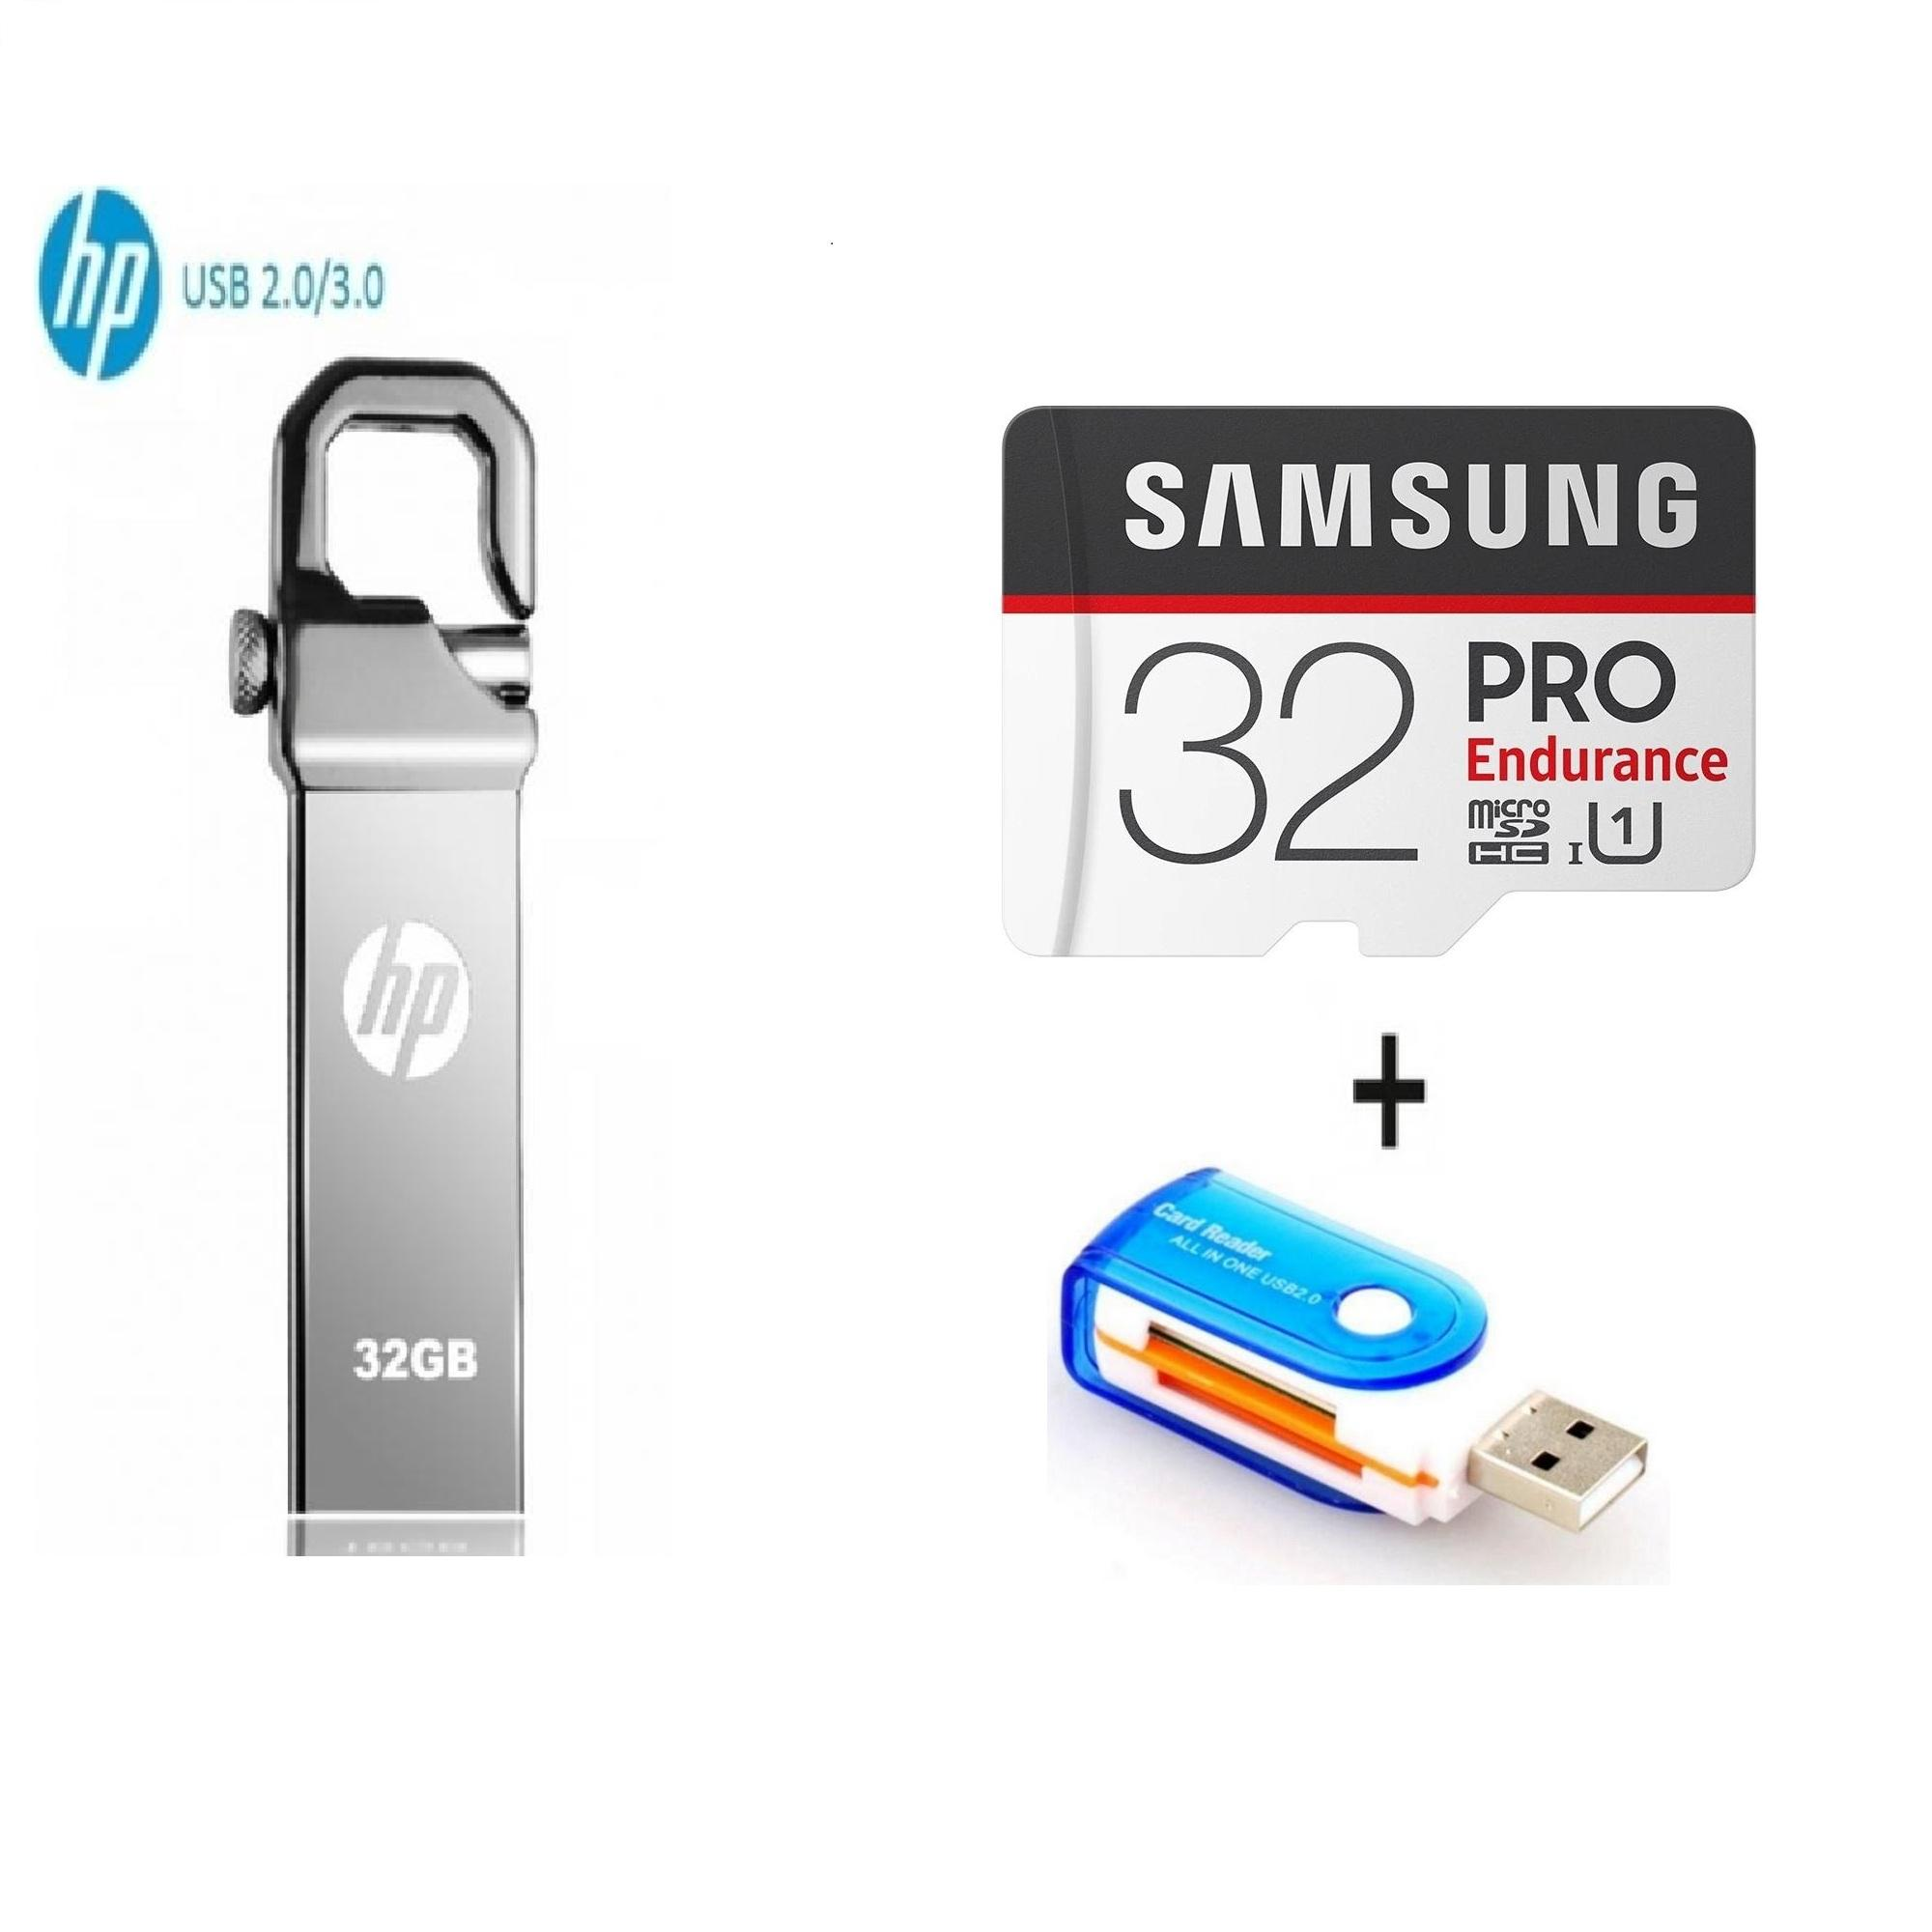 Buy Hp Flash Drives At Best Prices Online In Pakistan Flasdisk 8gb V250w Pack Of 3 32gb Usb 32 Gb Samsung Pro Endurance Memory Card